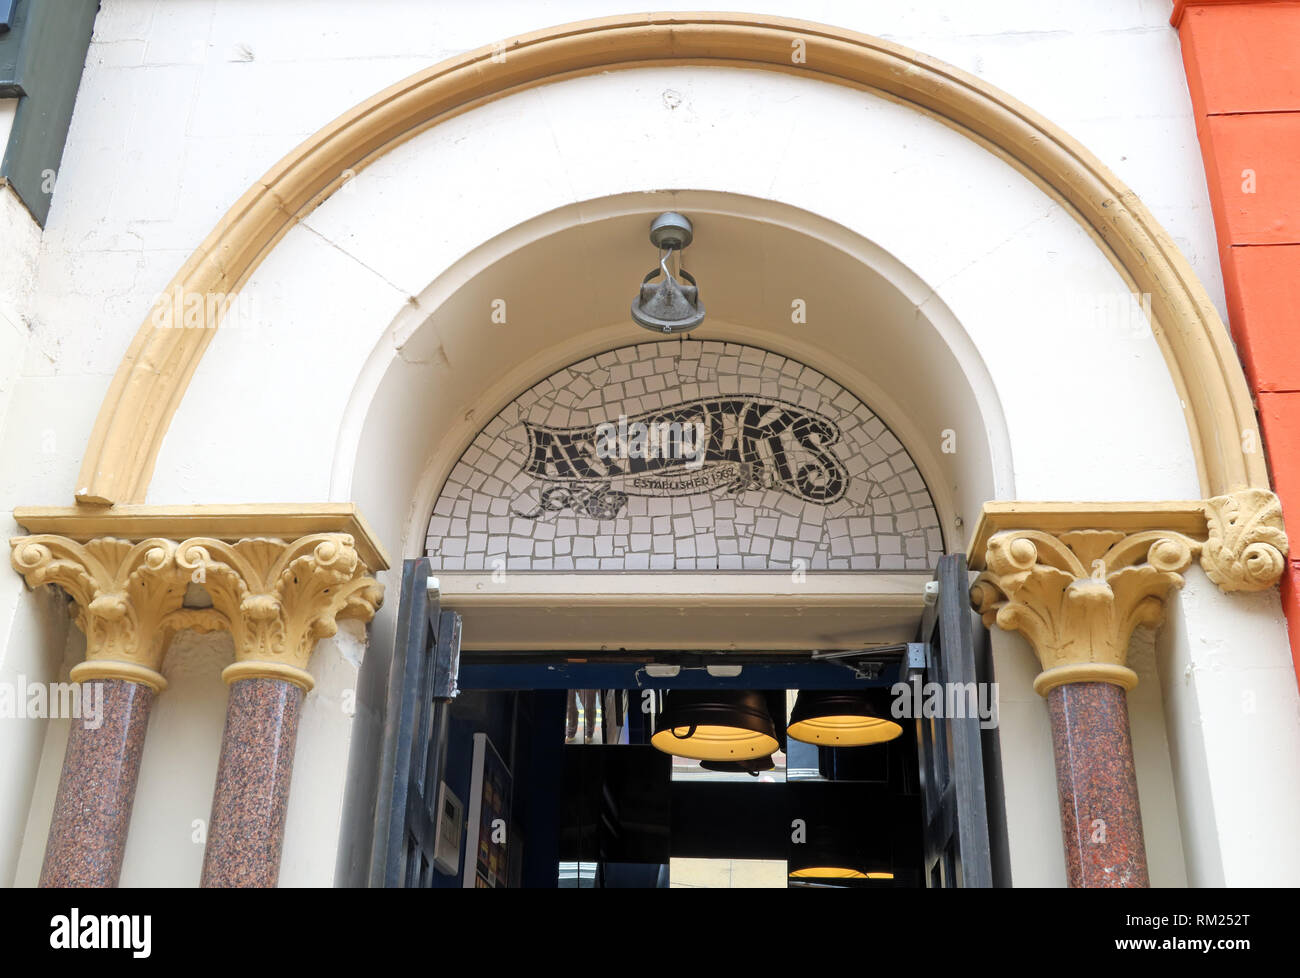 Afflecks Palace Entrance, Retro clothing emporium, 52 Church St, Manchester, North West England, UK,  M4 1PW - Stock Image